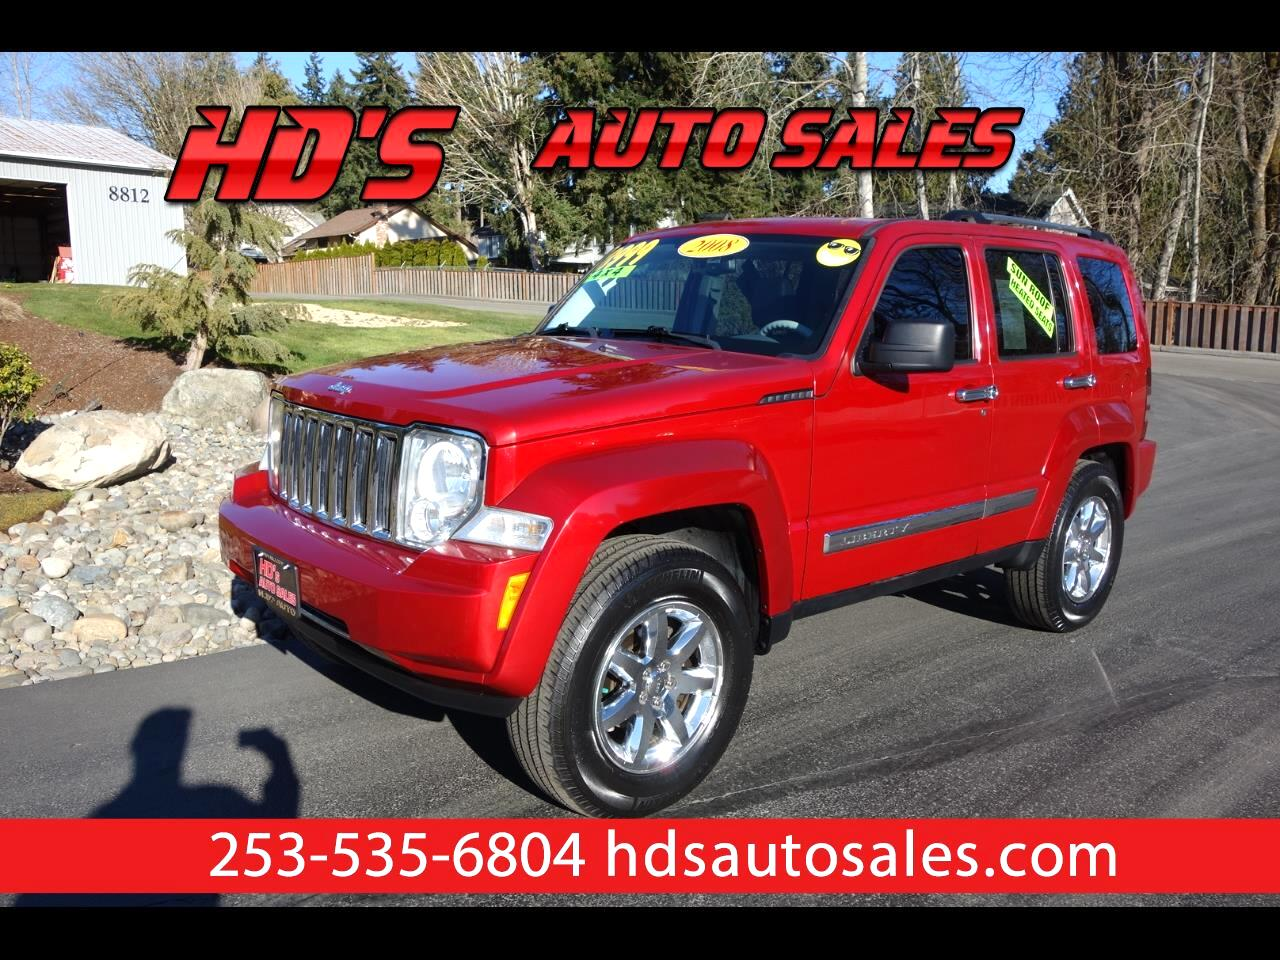 2008 Jeep Liberty Limited 4WD